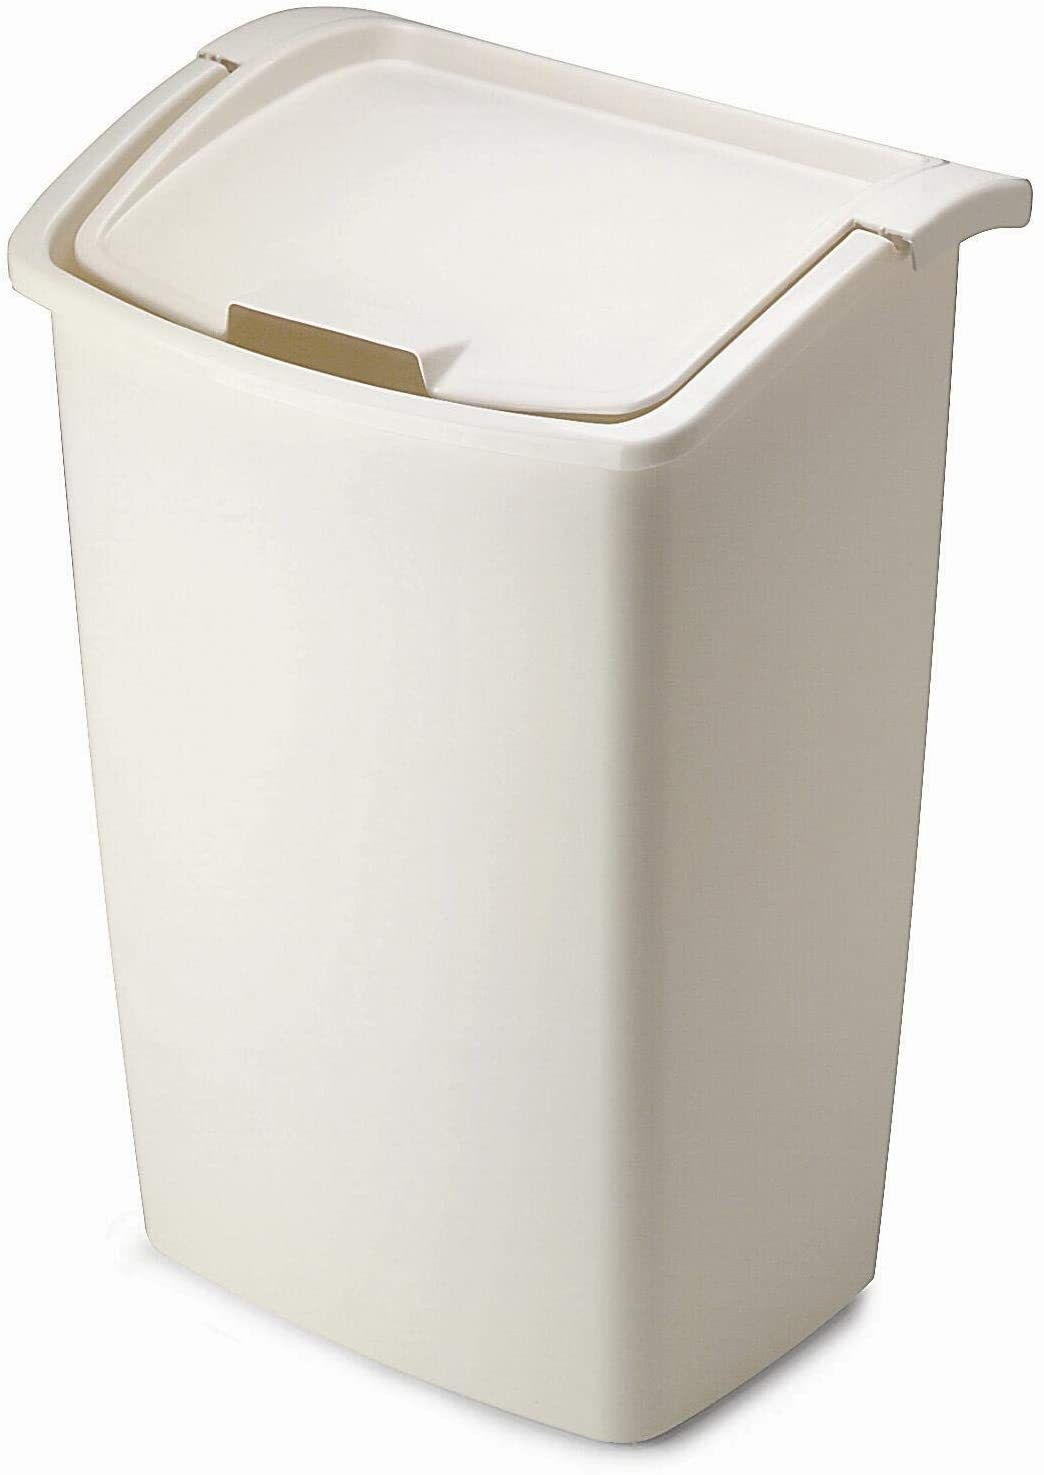 Rubbermaid Dual-Action Swing Lid Trash Can